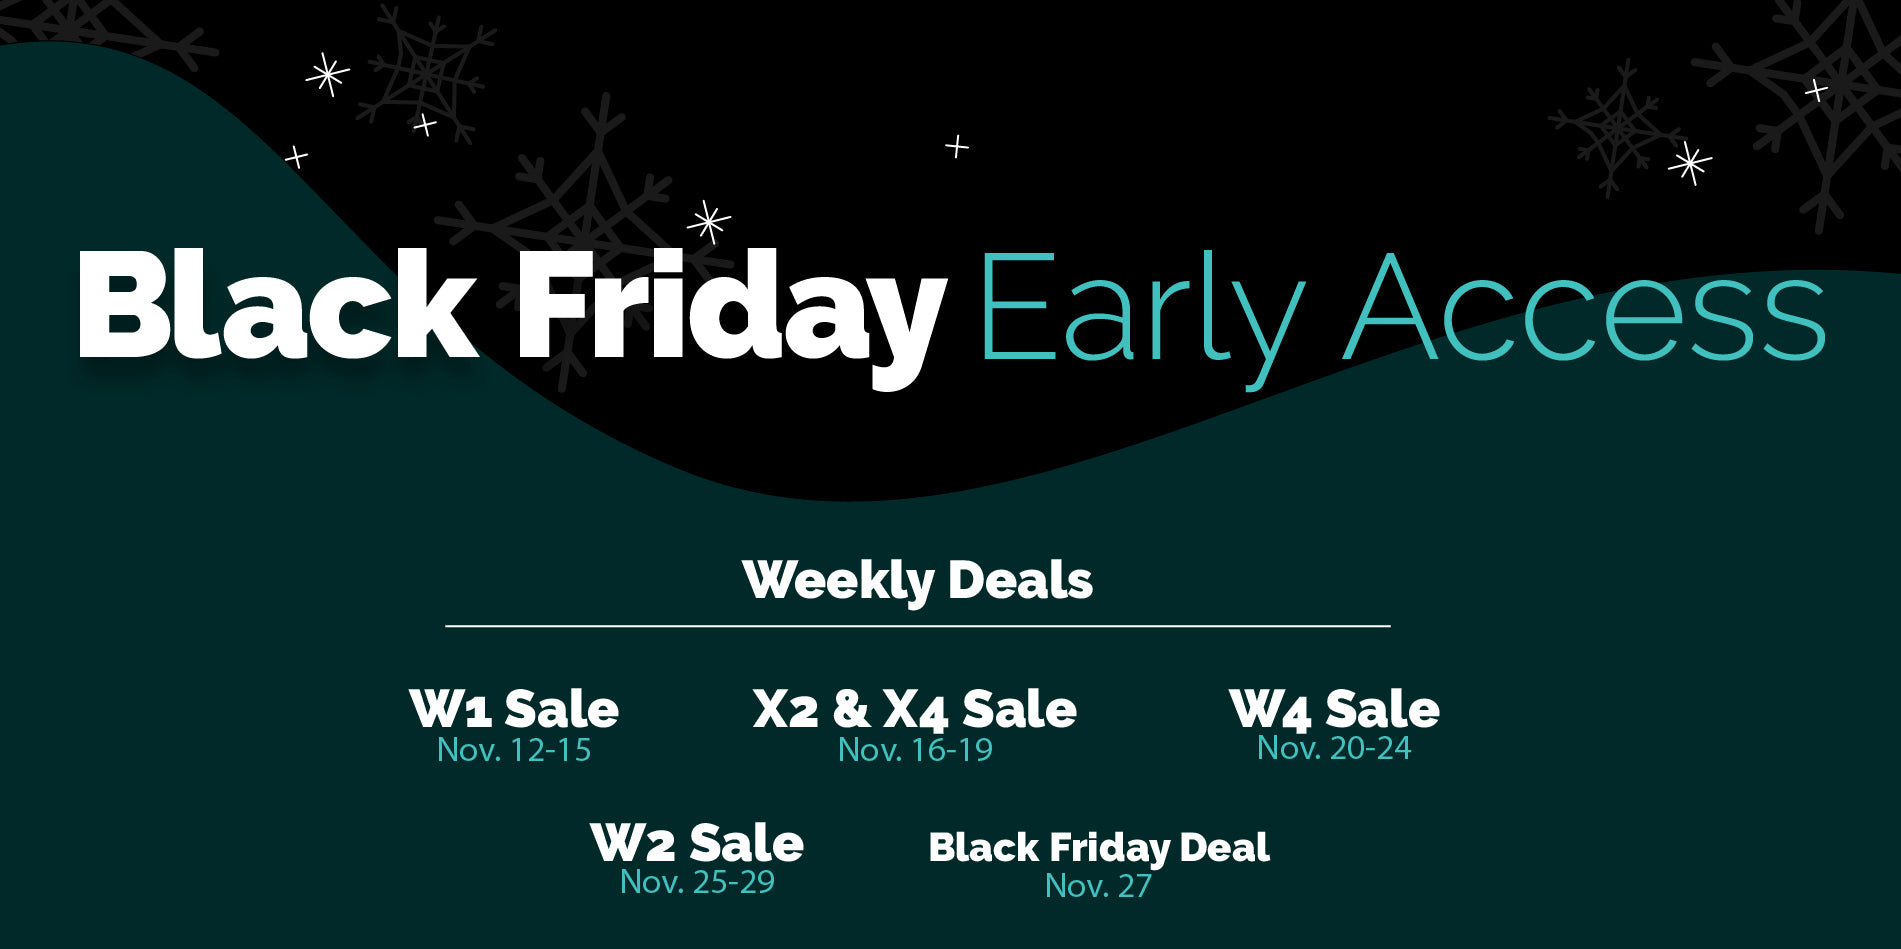 wonderfold wagon black friday deals